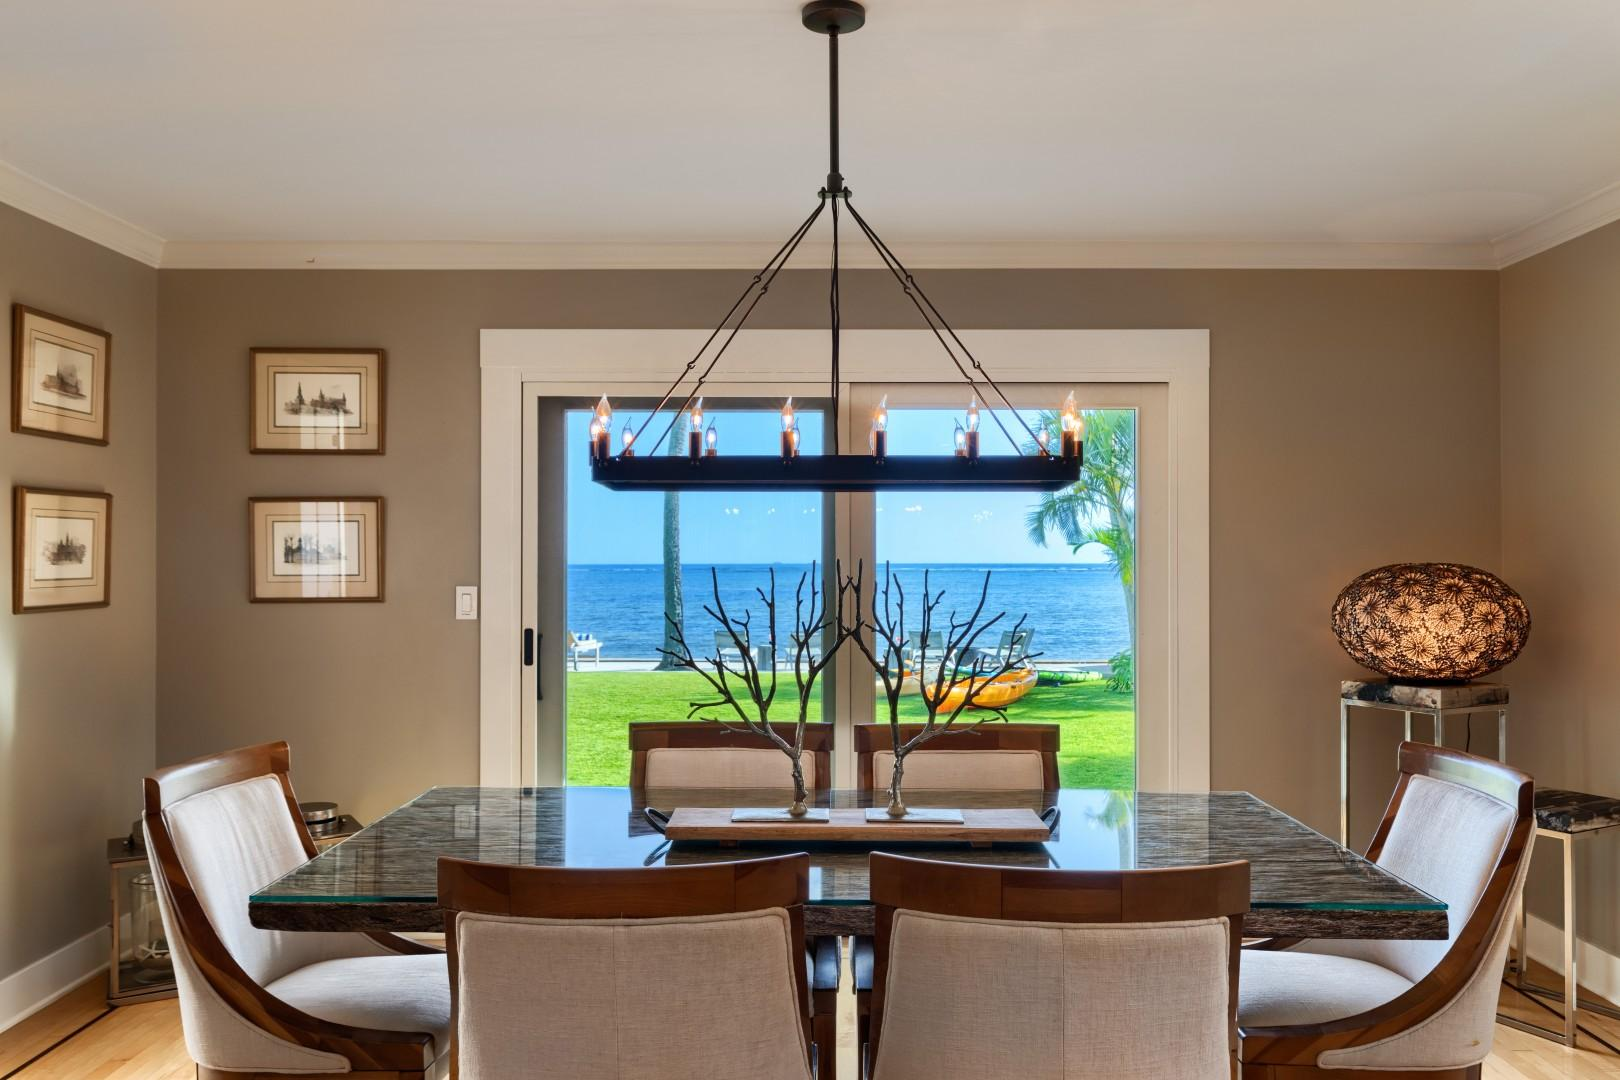 The dining room is directly in front of the ocean, for maximum views during dinner.